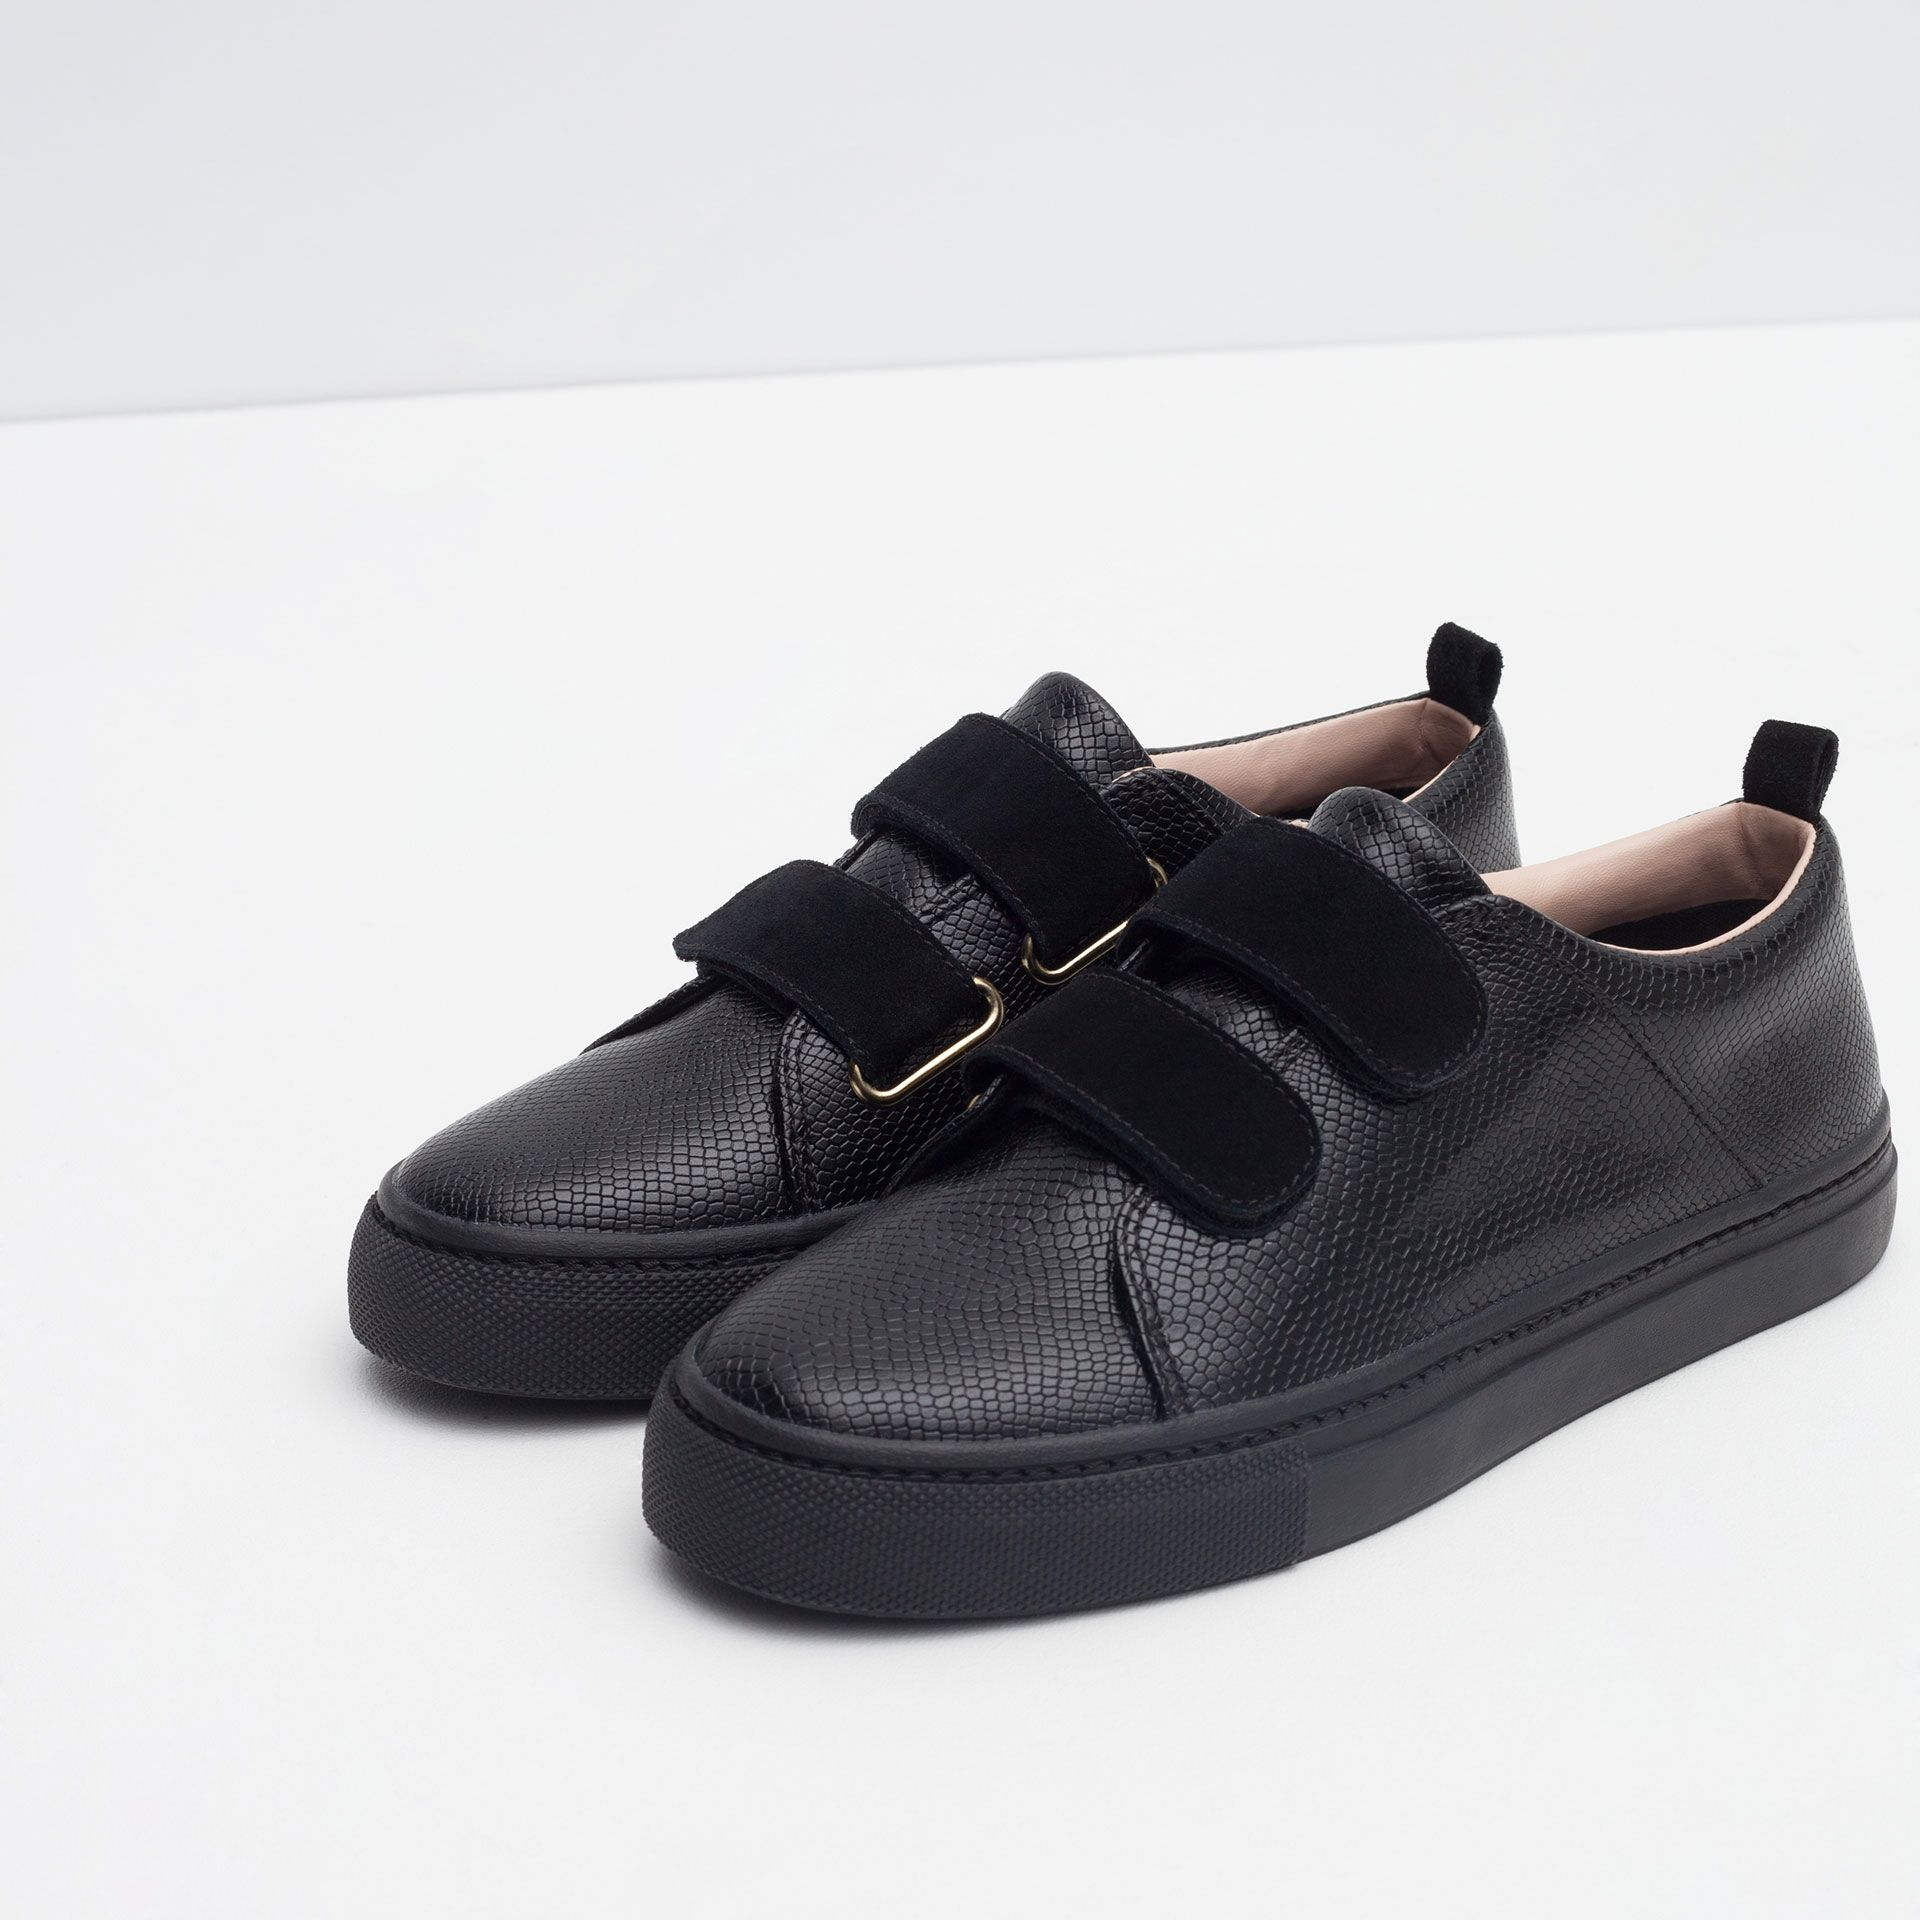 Shop Women's Zara Black size Shoes at a discounted price at Poshmark. EUR 38  US Sold by Fast delivery, full service customer support.